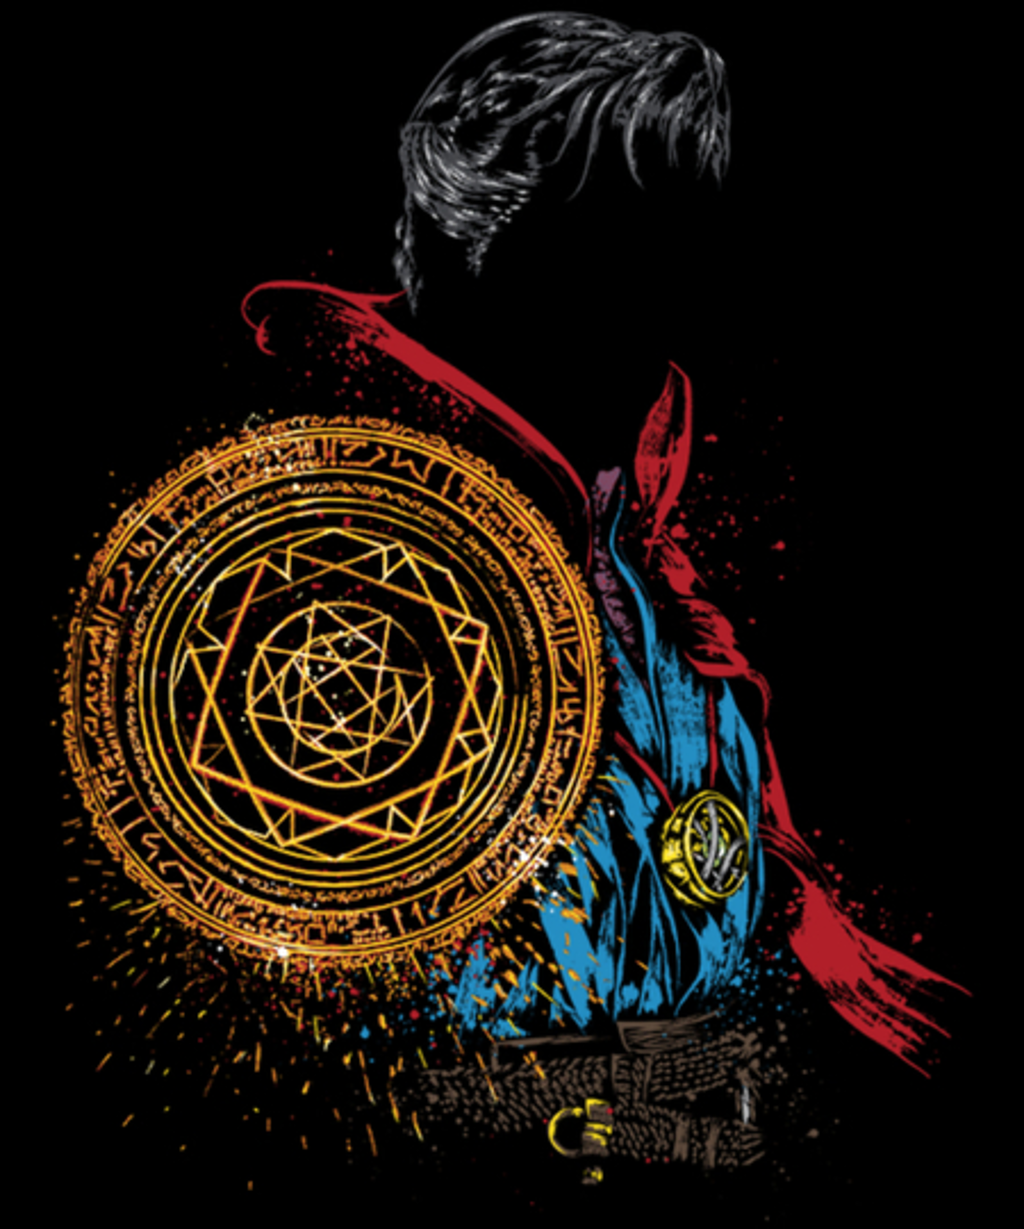 Qwertee: The Power of Magic